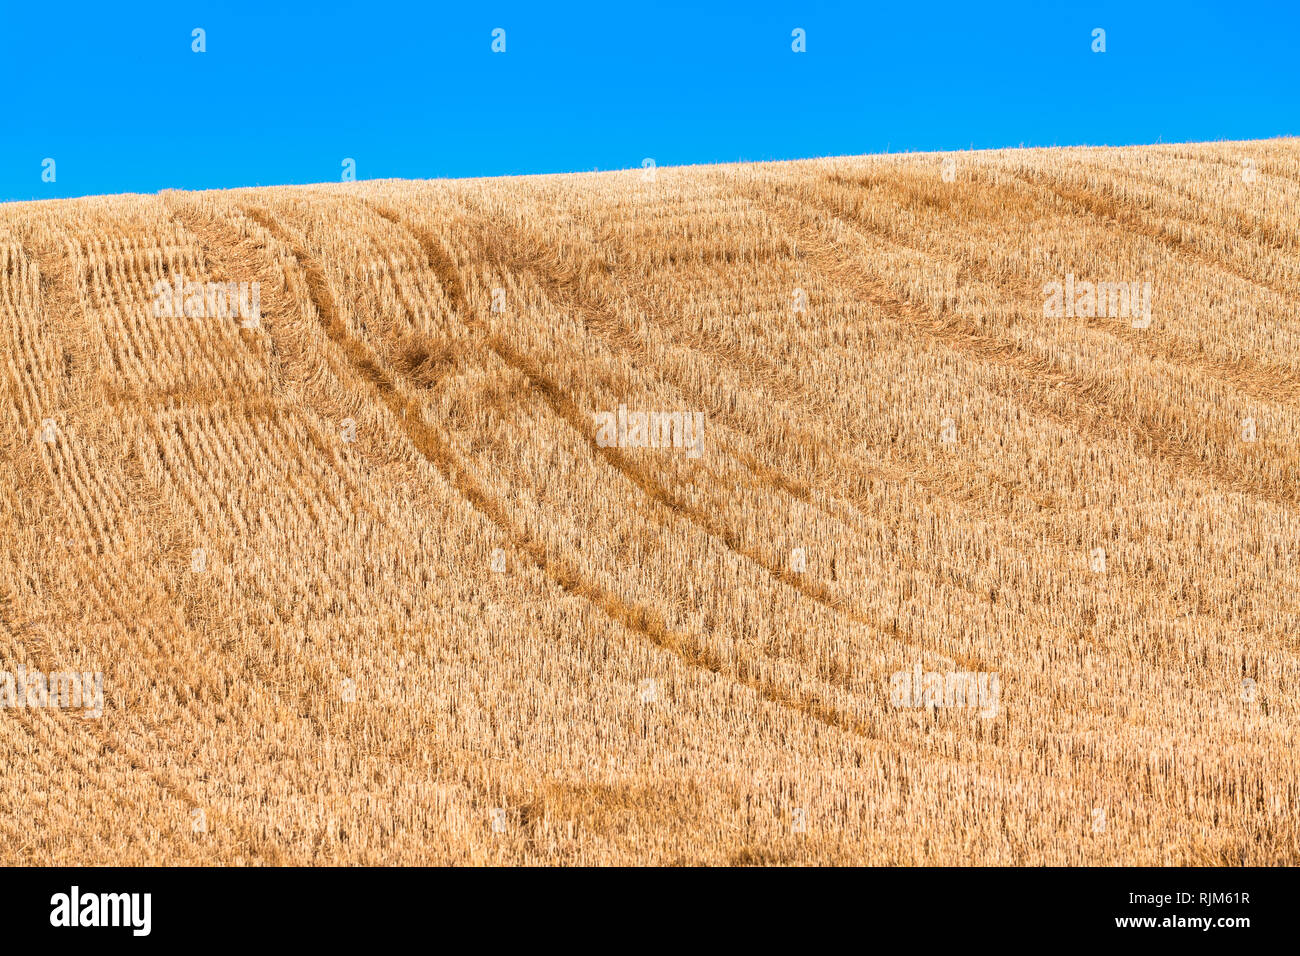 Golden harvested hilly field of grain, short cut stubbles, vehicle tracks uphill, blue sky background (copy space) Stock Photo